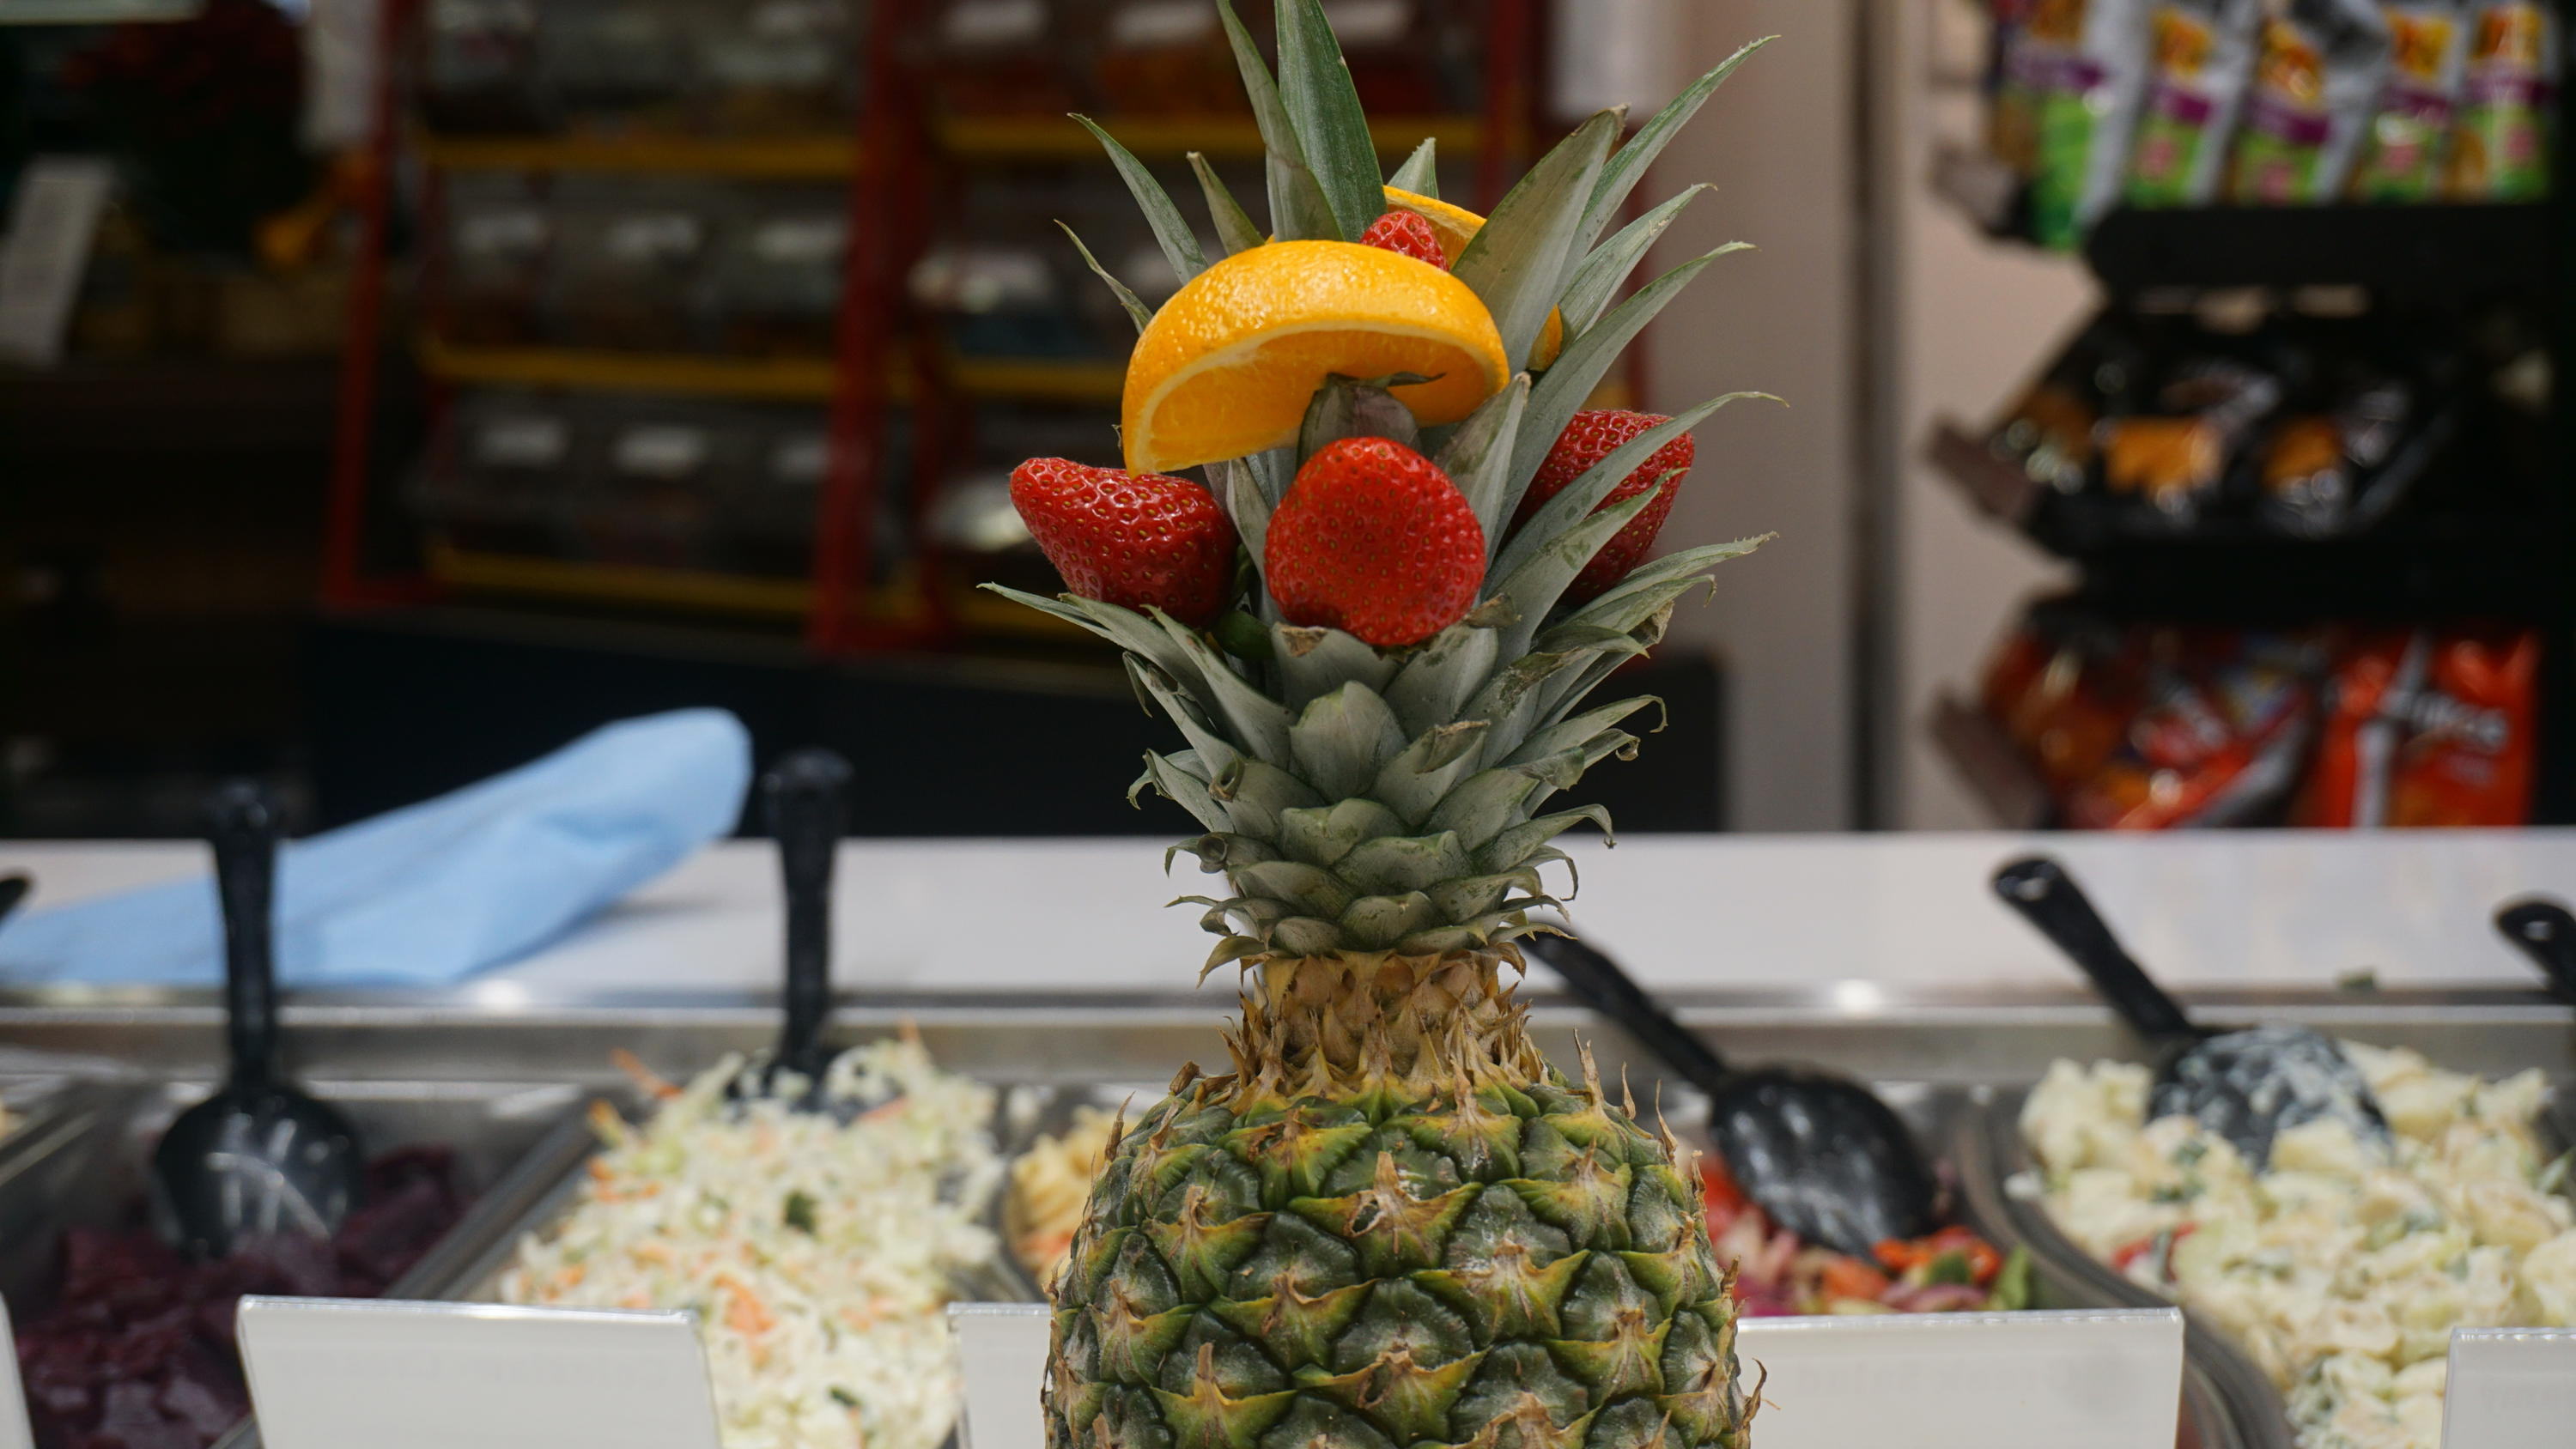 Pineapple in residence cafeteria